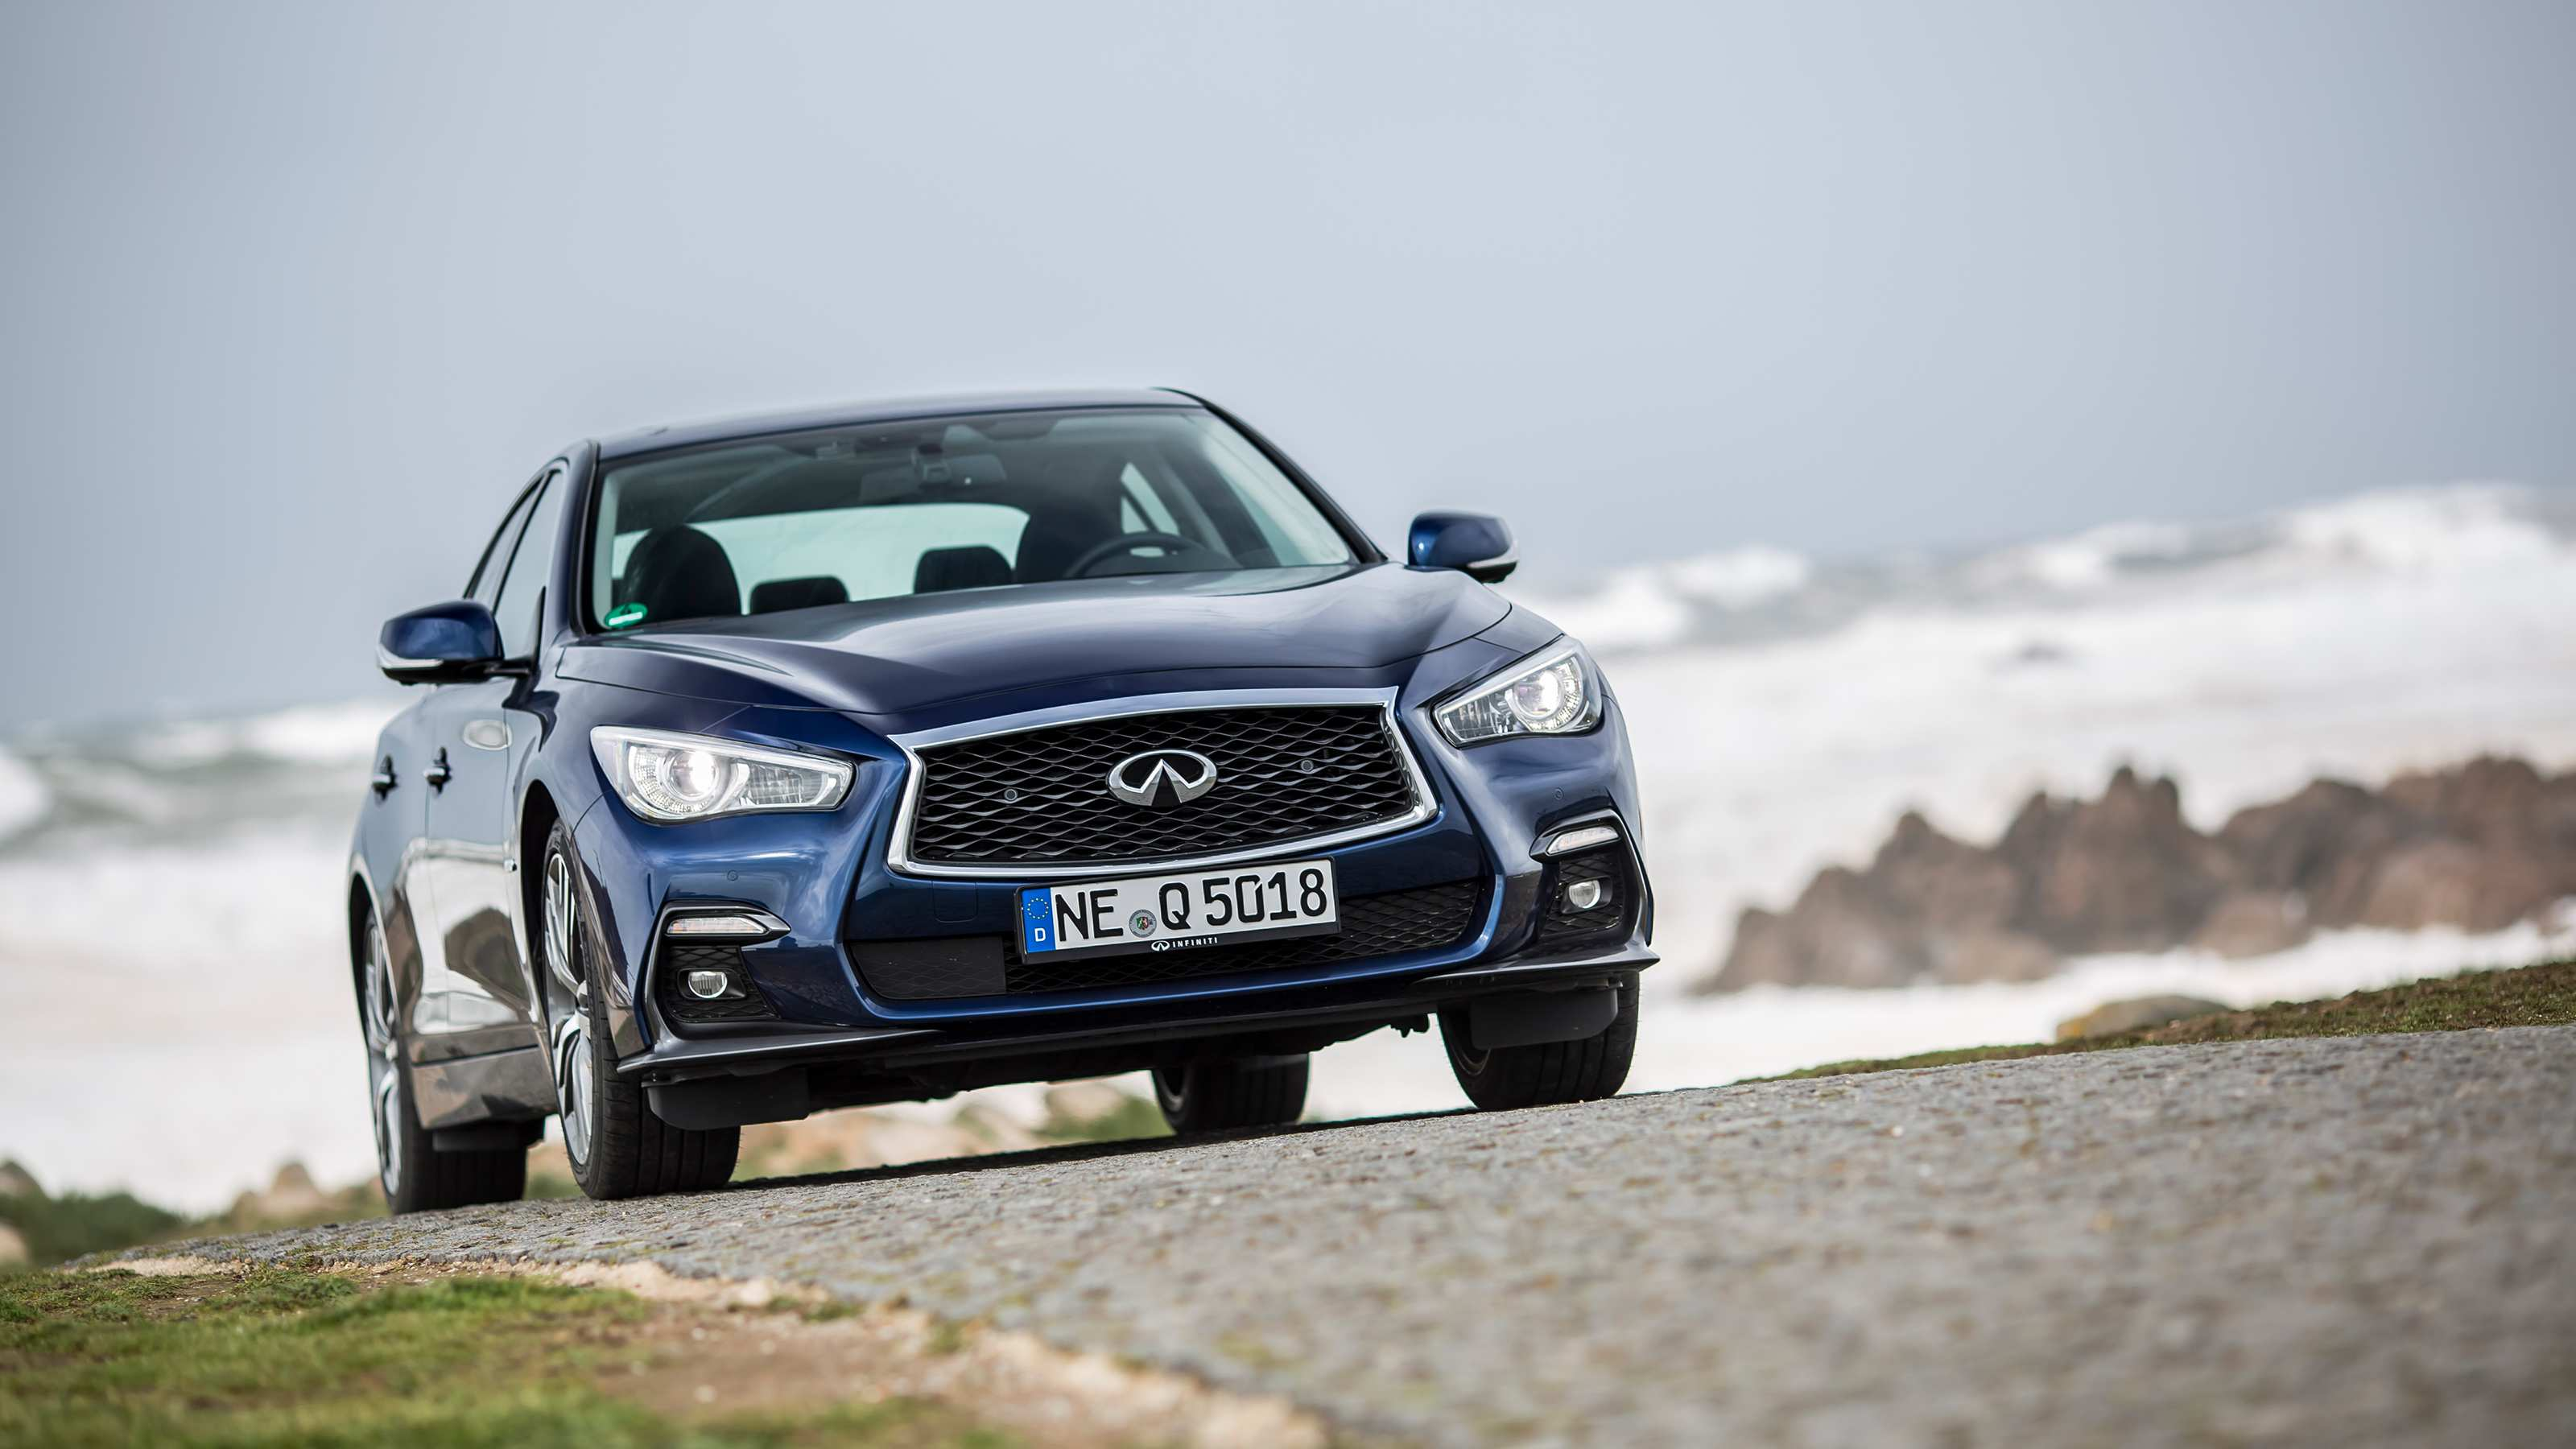 83 A Infiniti Fx 2020 Price Design And Review